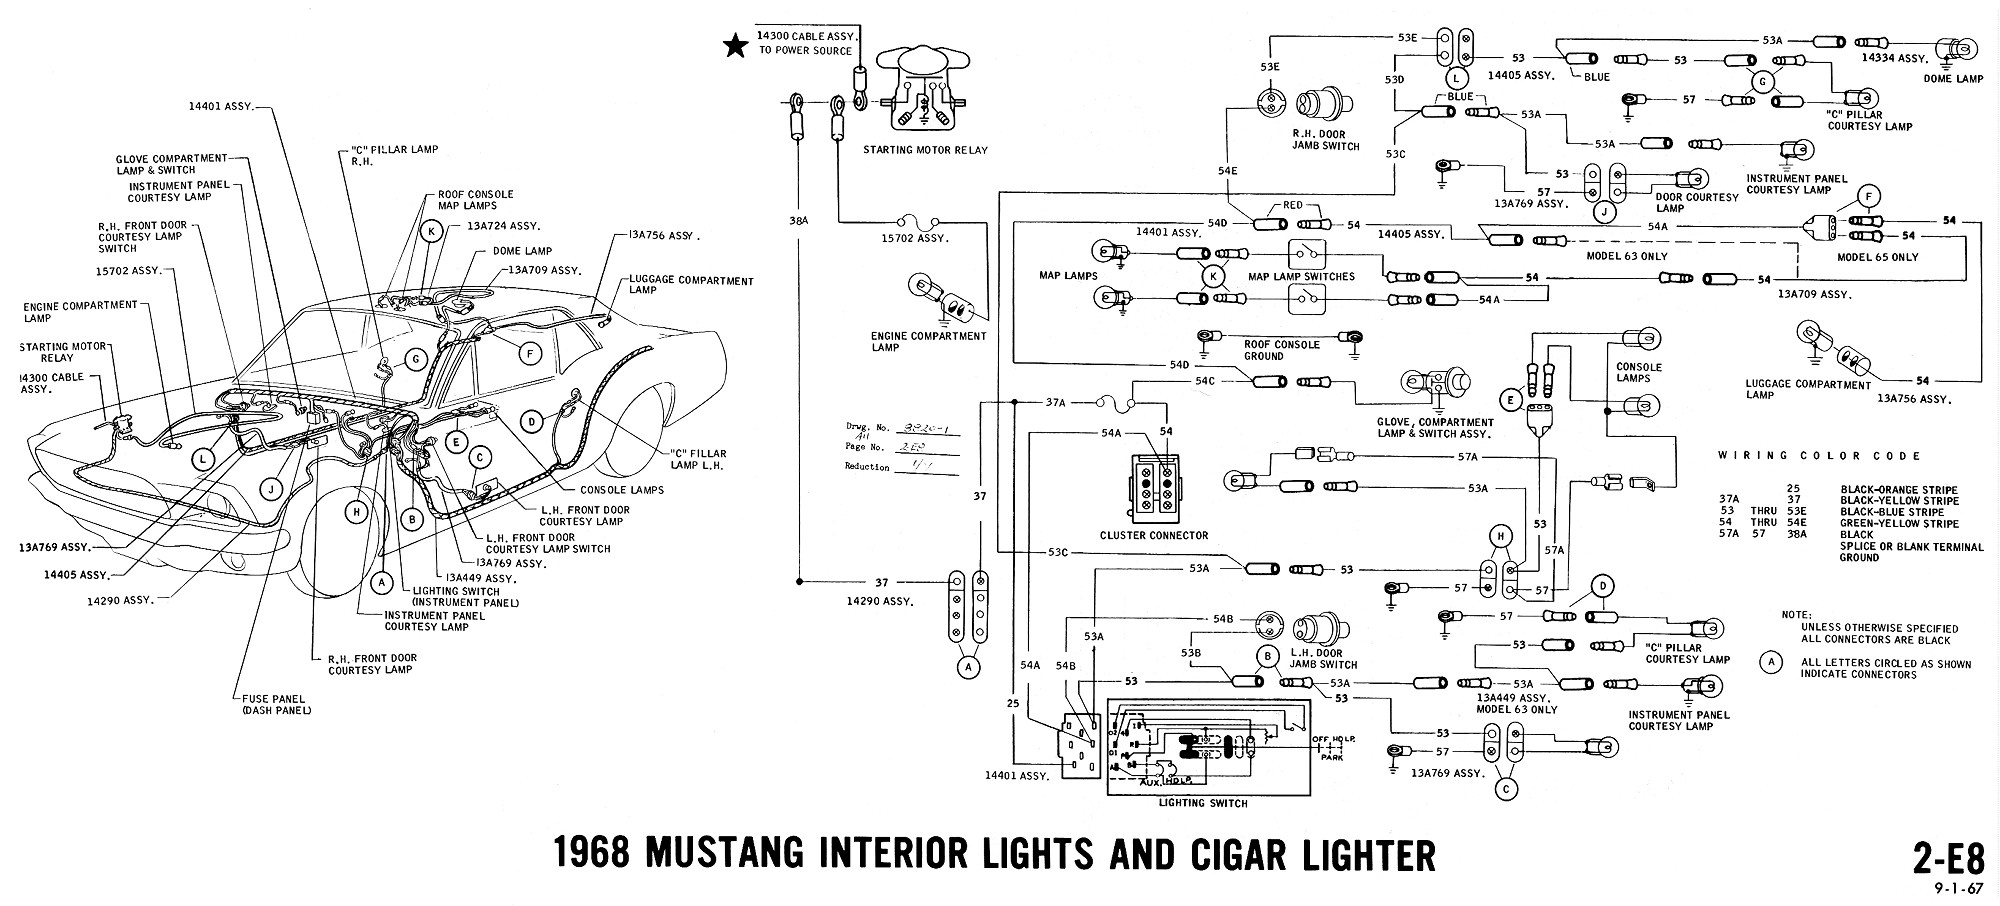 1968 mustang wiring diagrams and vacuum schematics average 1968 mustang wiring diagrams evolving